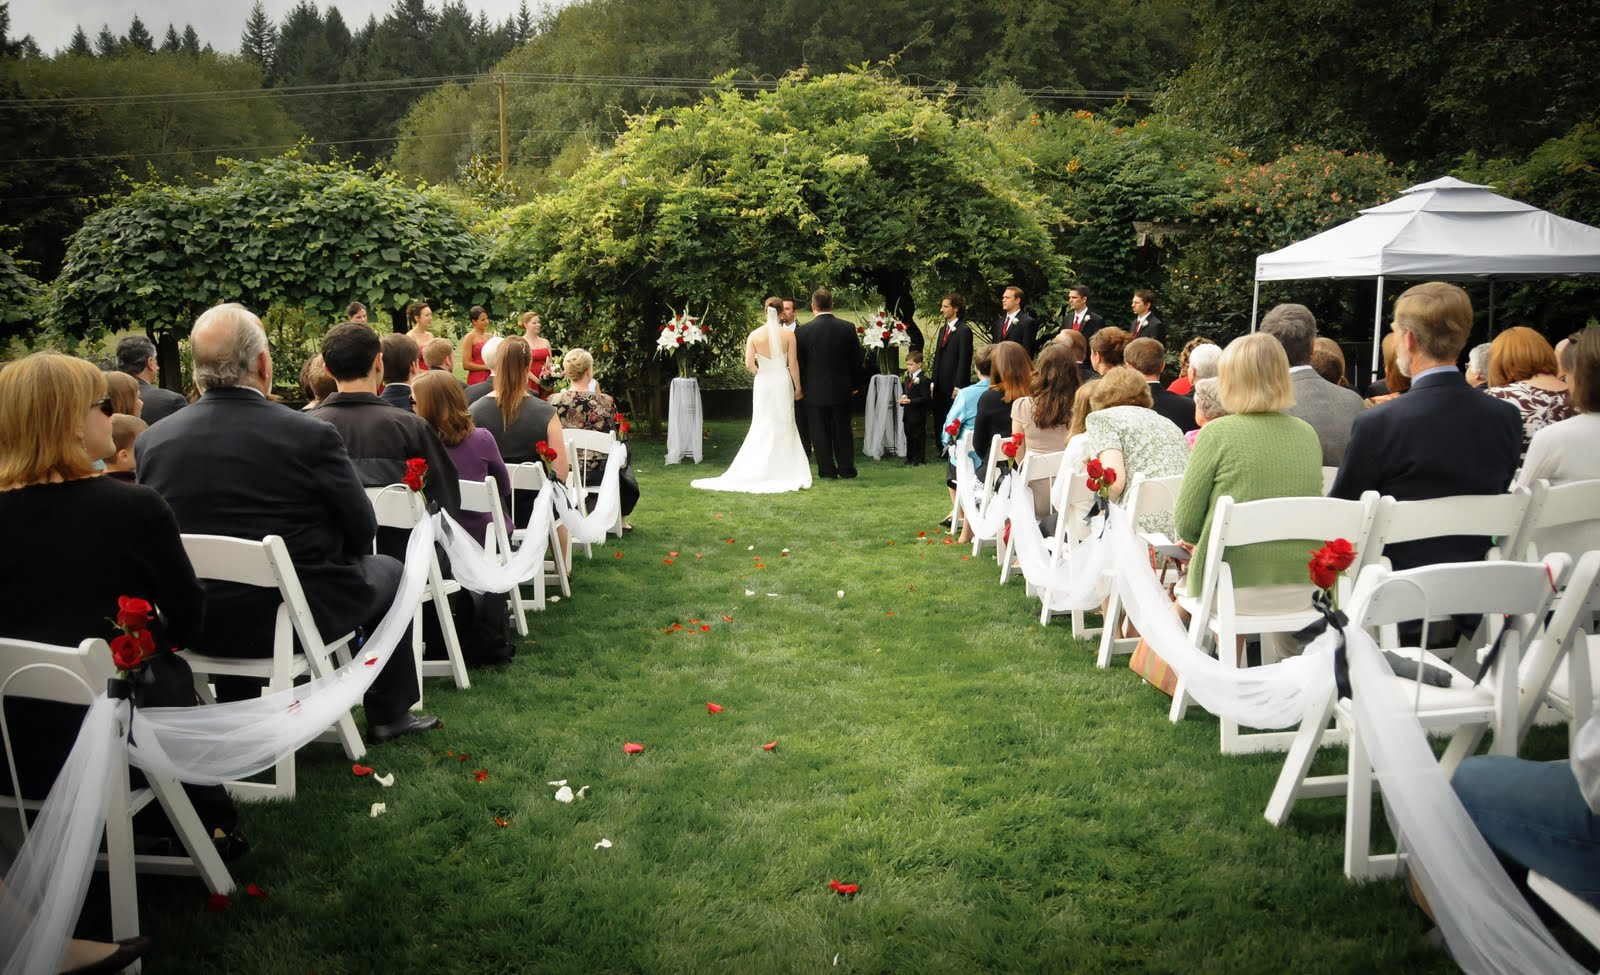 The perfect garden wedding.